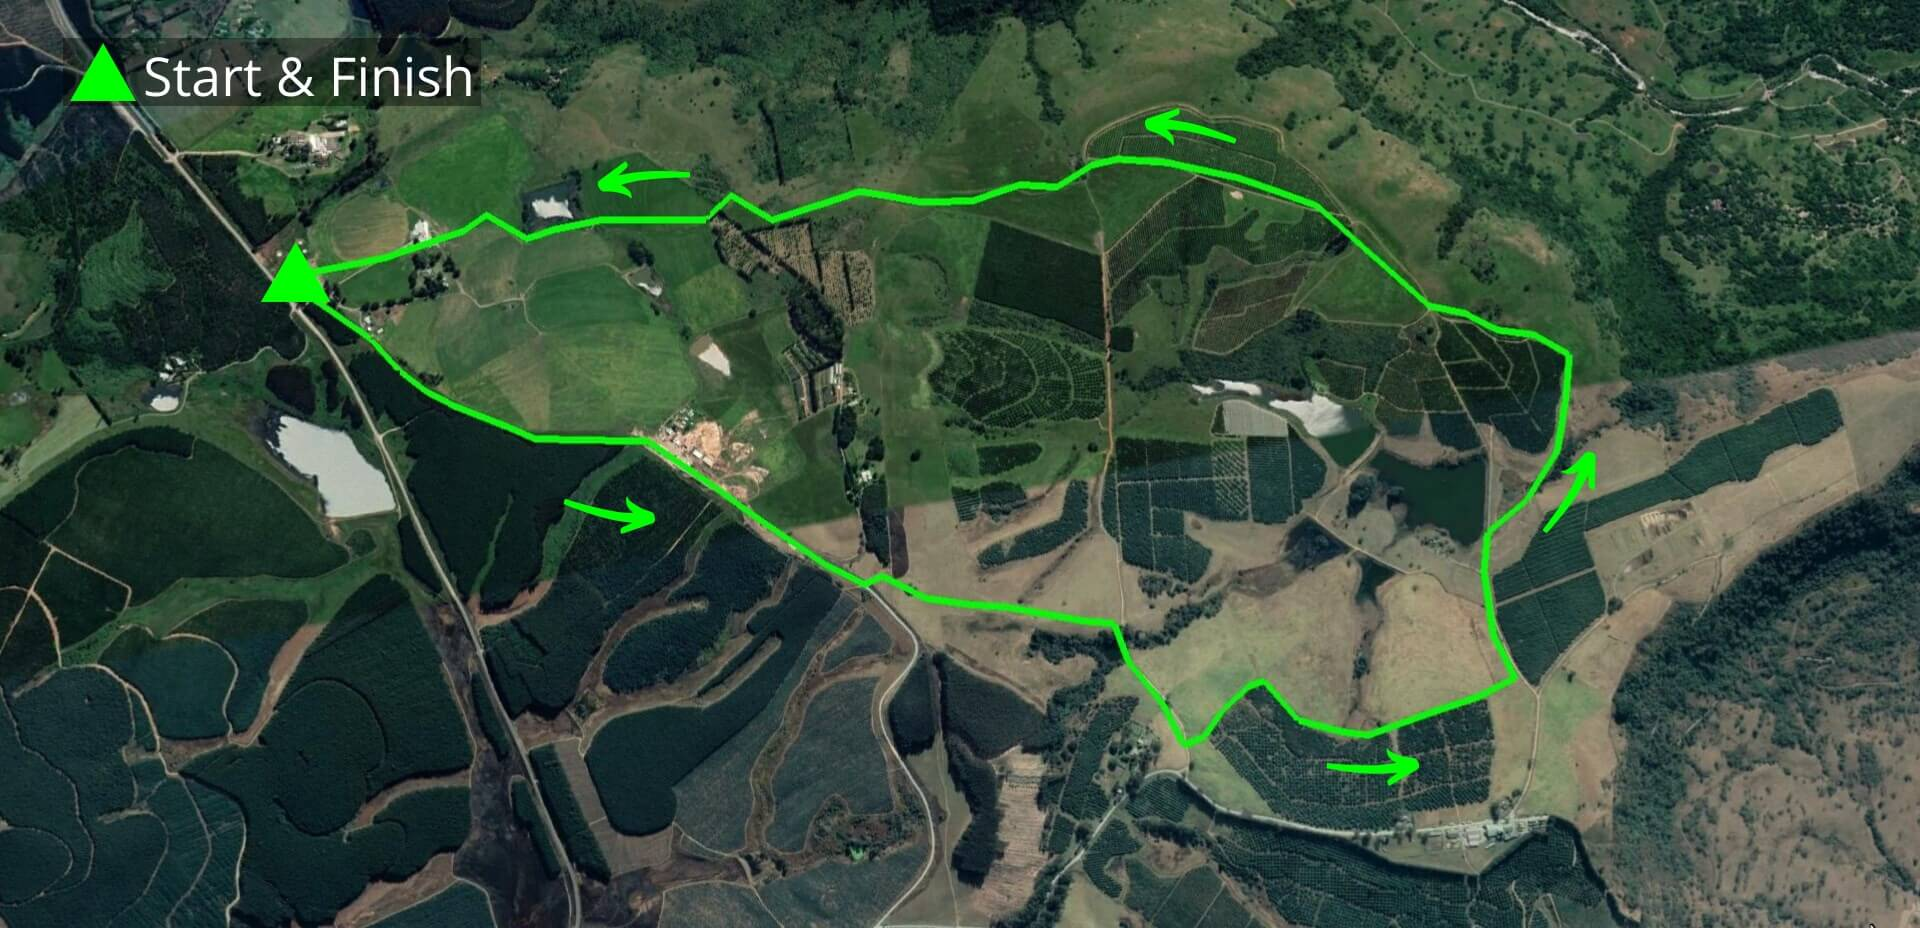 KZNTR Howick Trail Run Mar20 - 10km Course Route (Directioned)